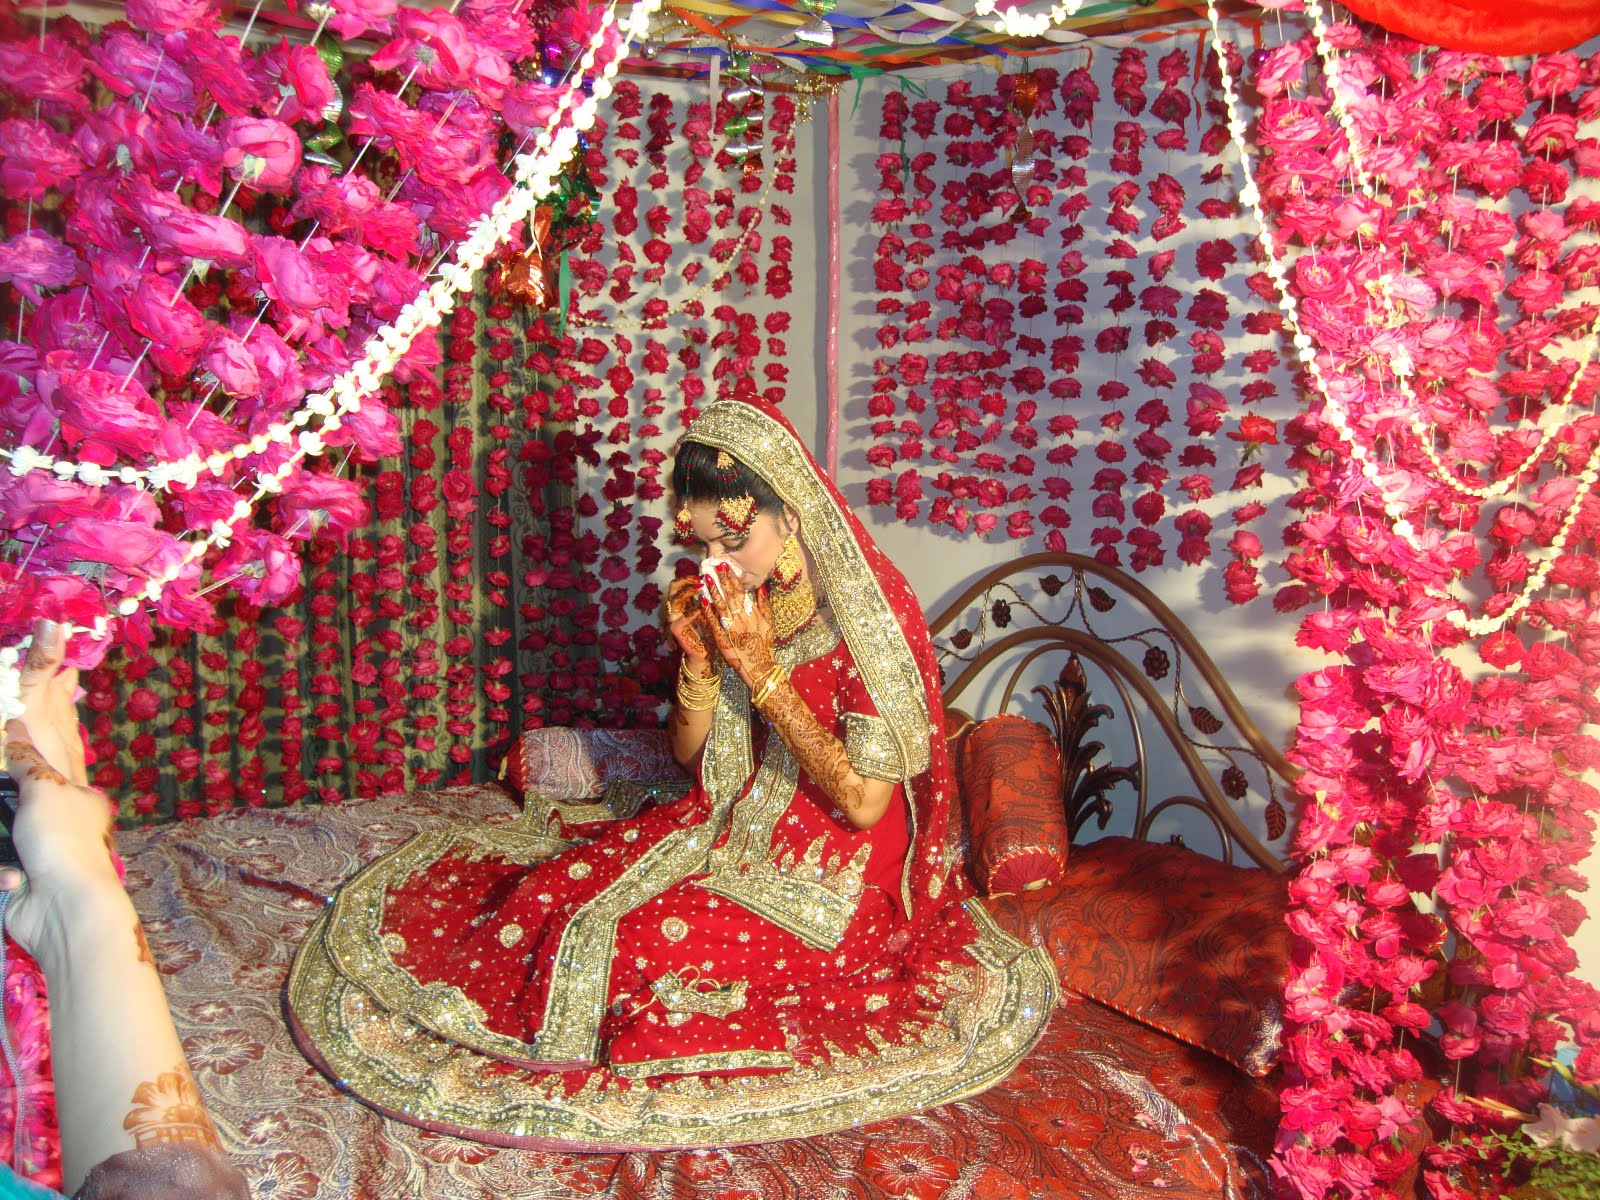 Asian wedding blog jugnu wasim makeup for Asian wedding bed decoration